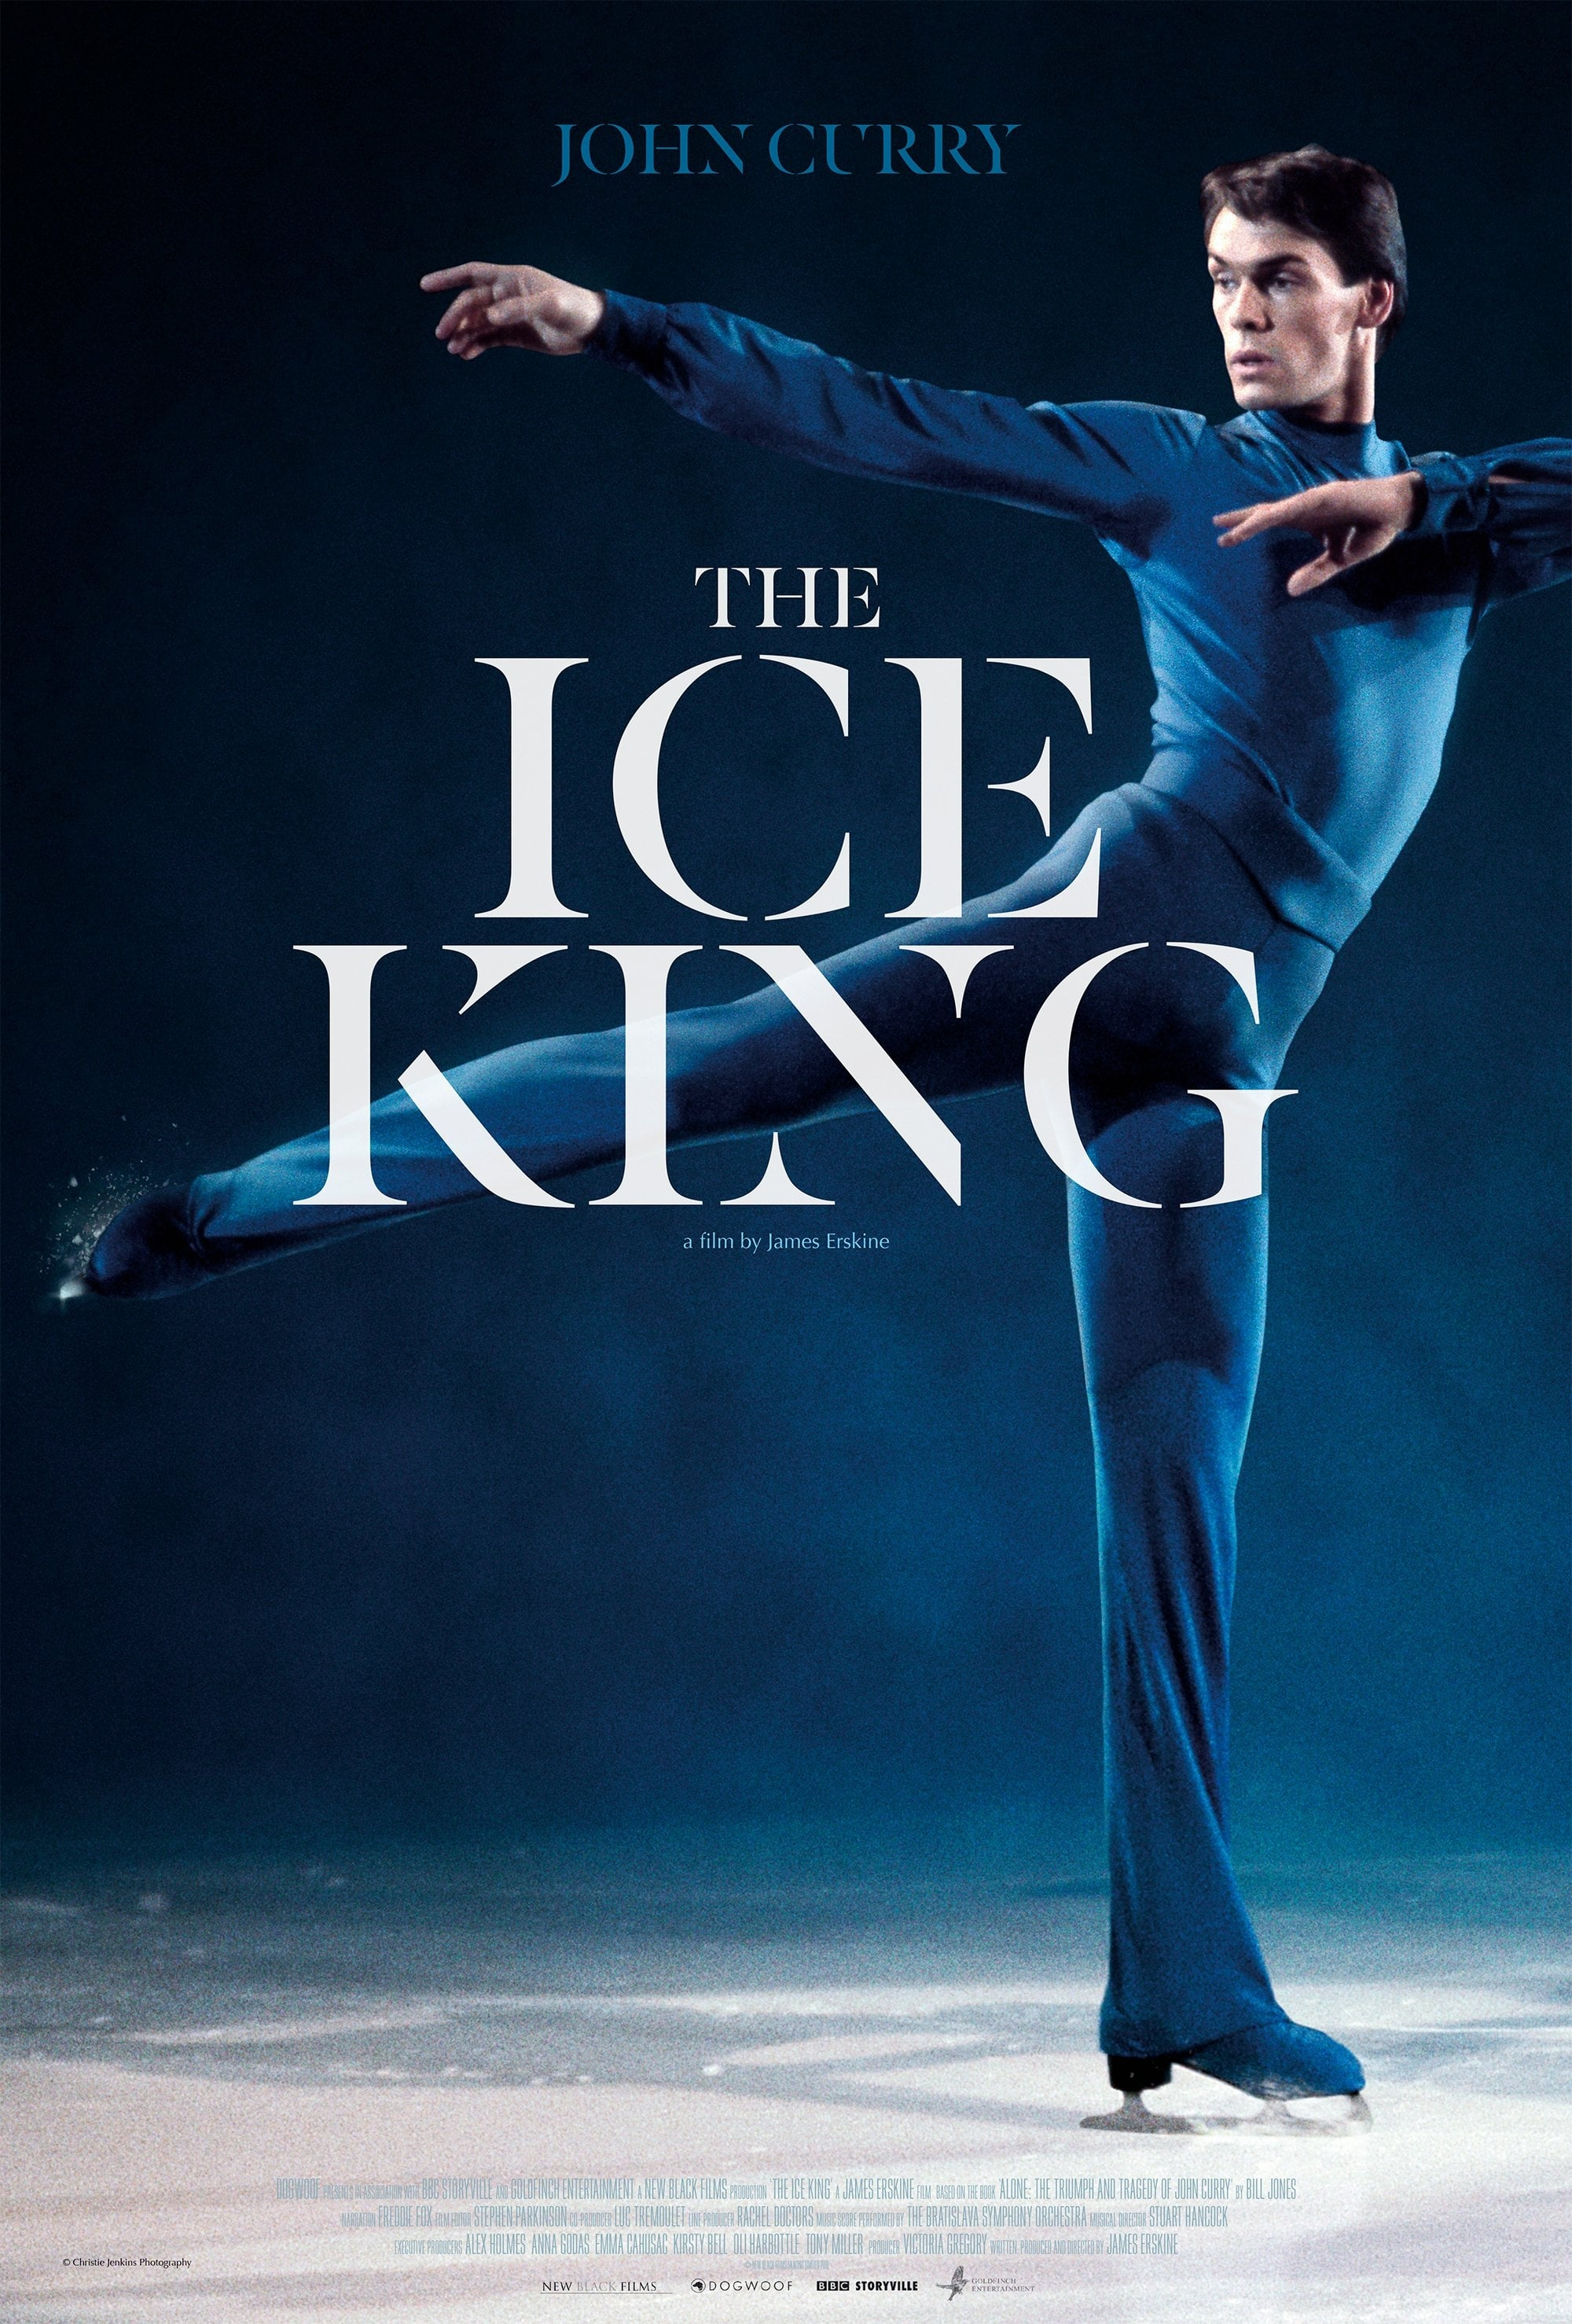 image for The Ice King